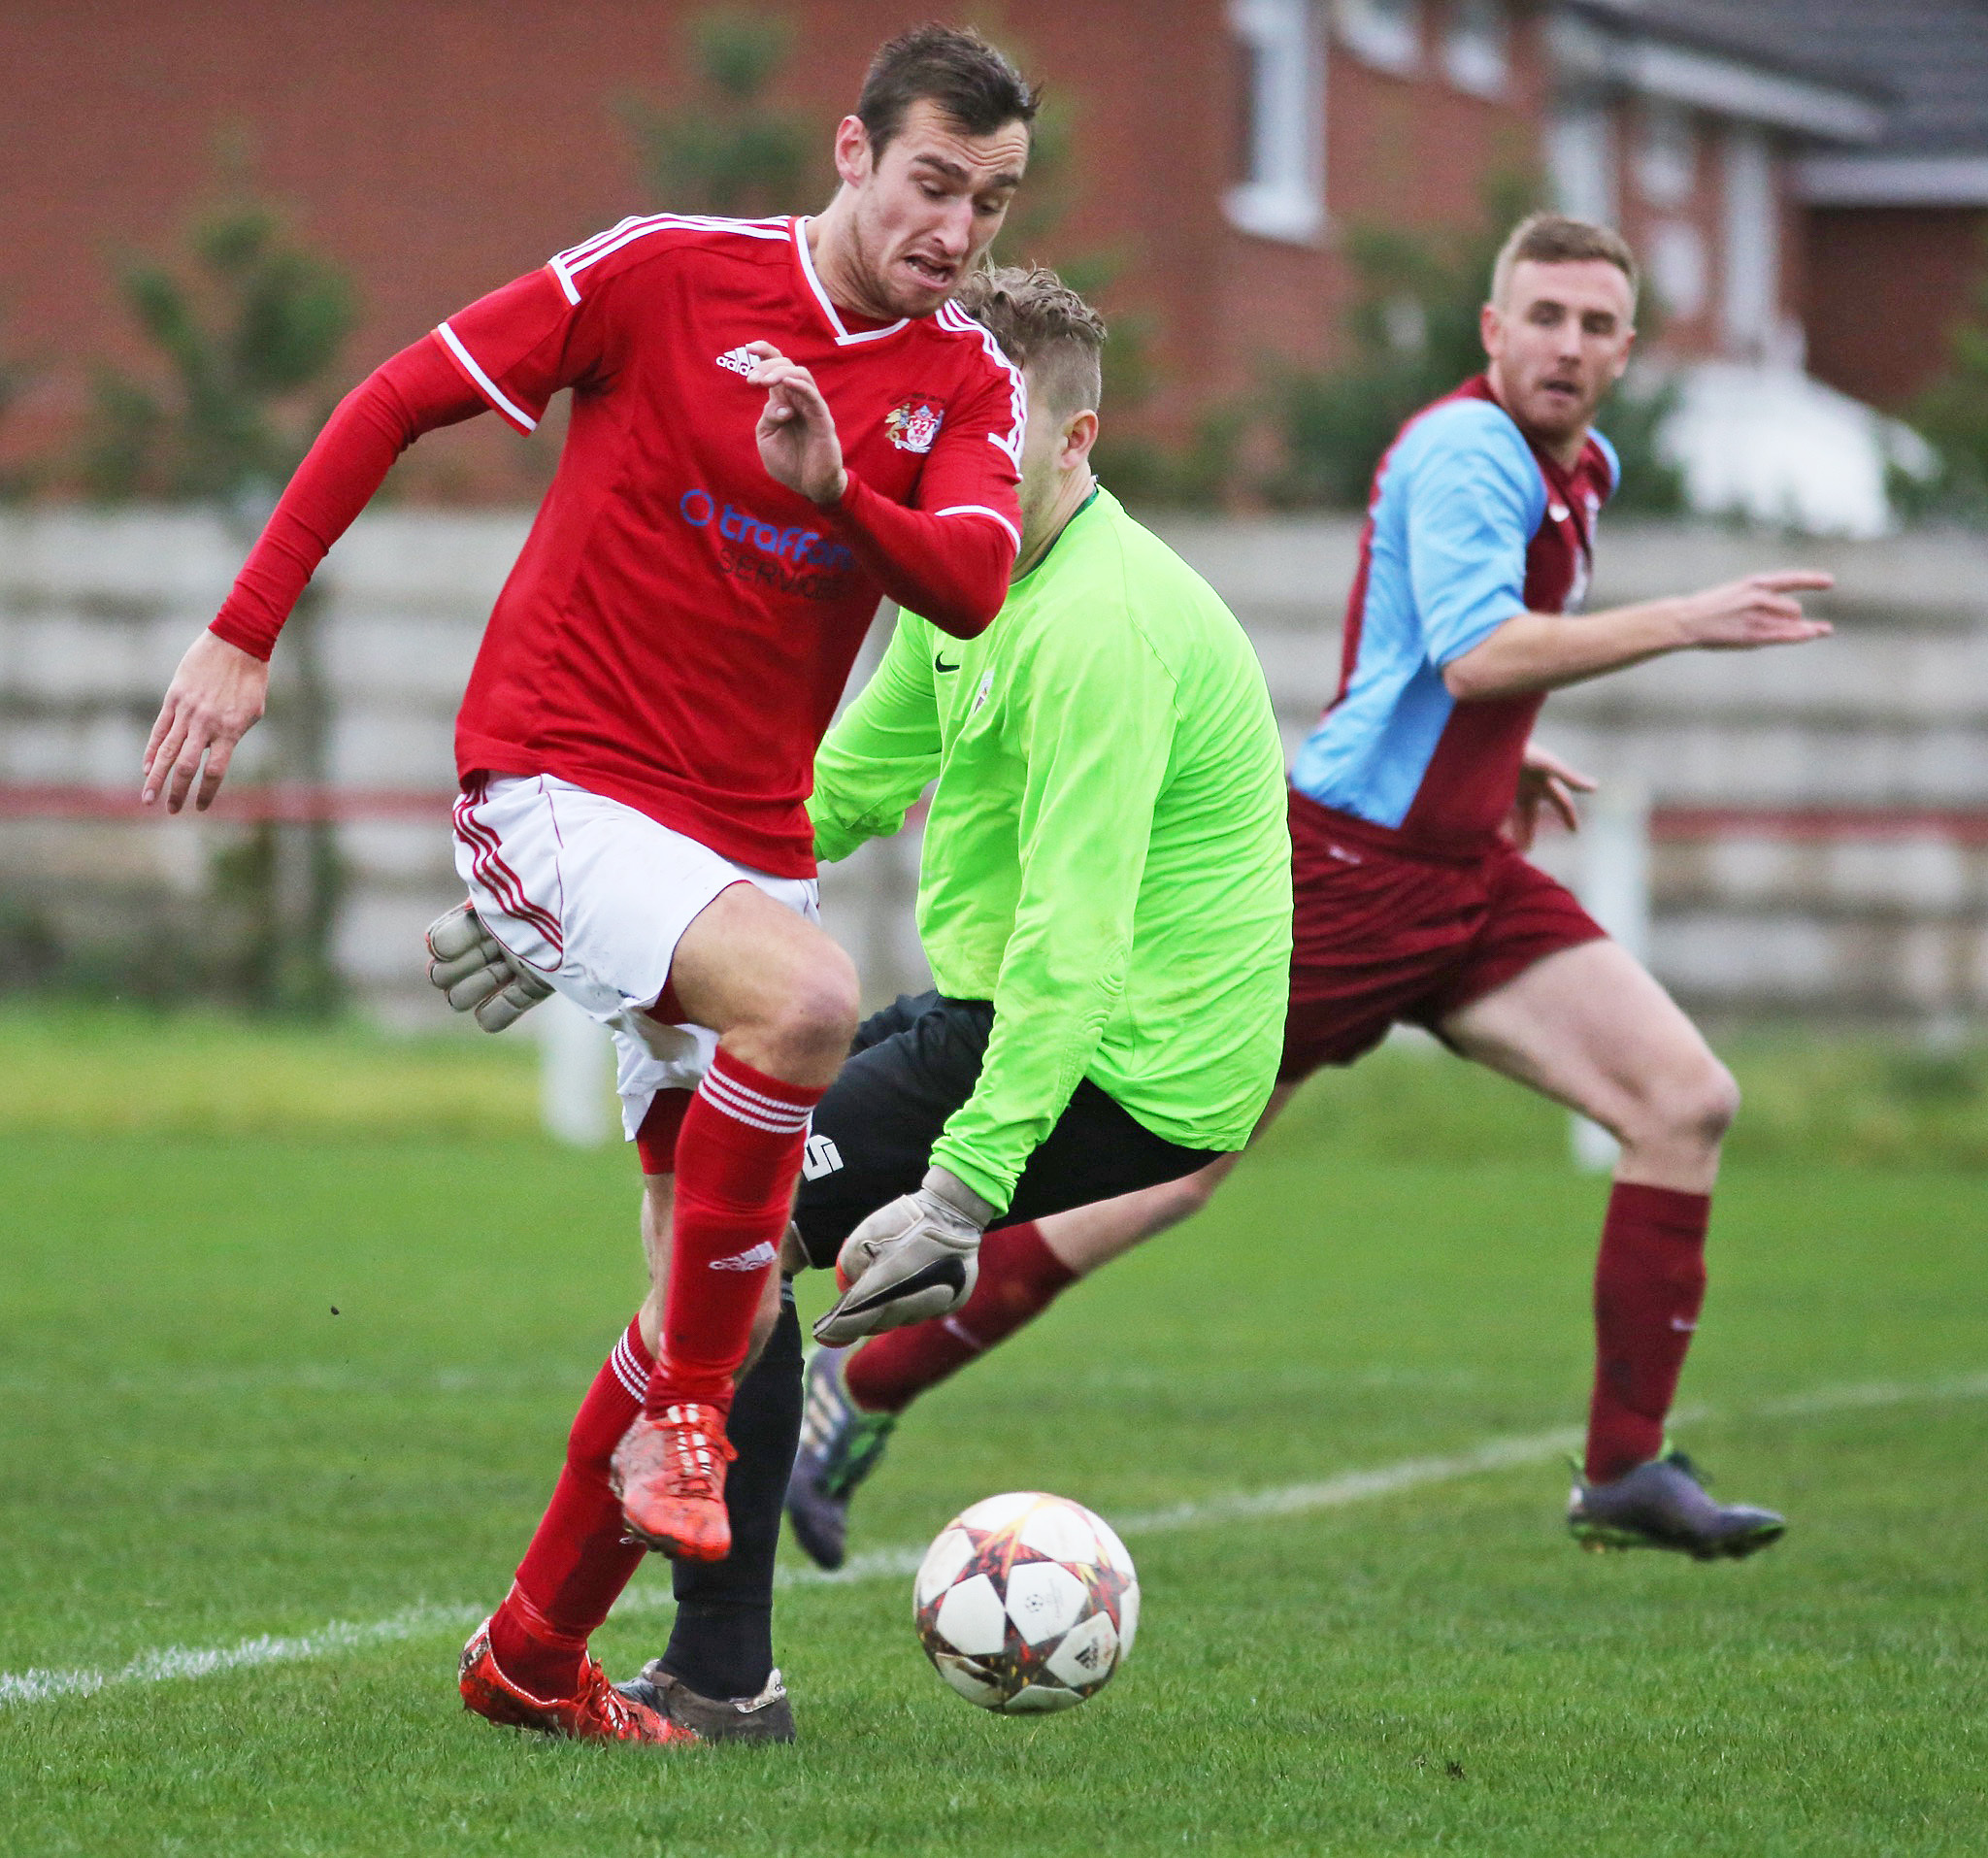 Jon Stephenson beats the keeper to slot home the second goal for Prestwich Heys